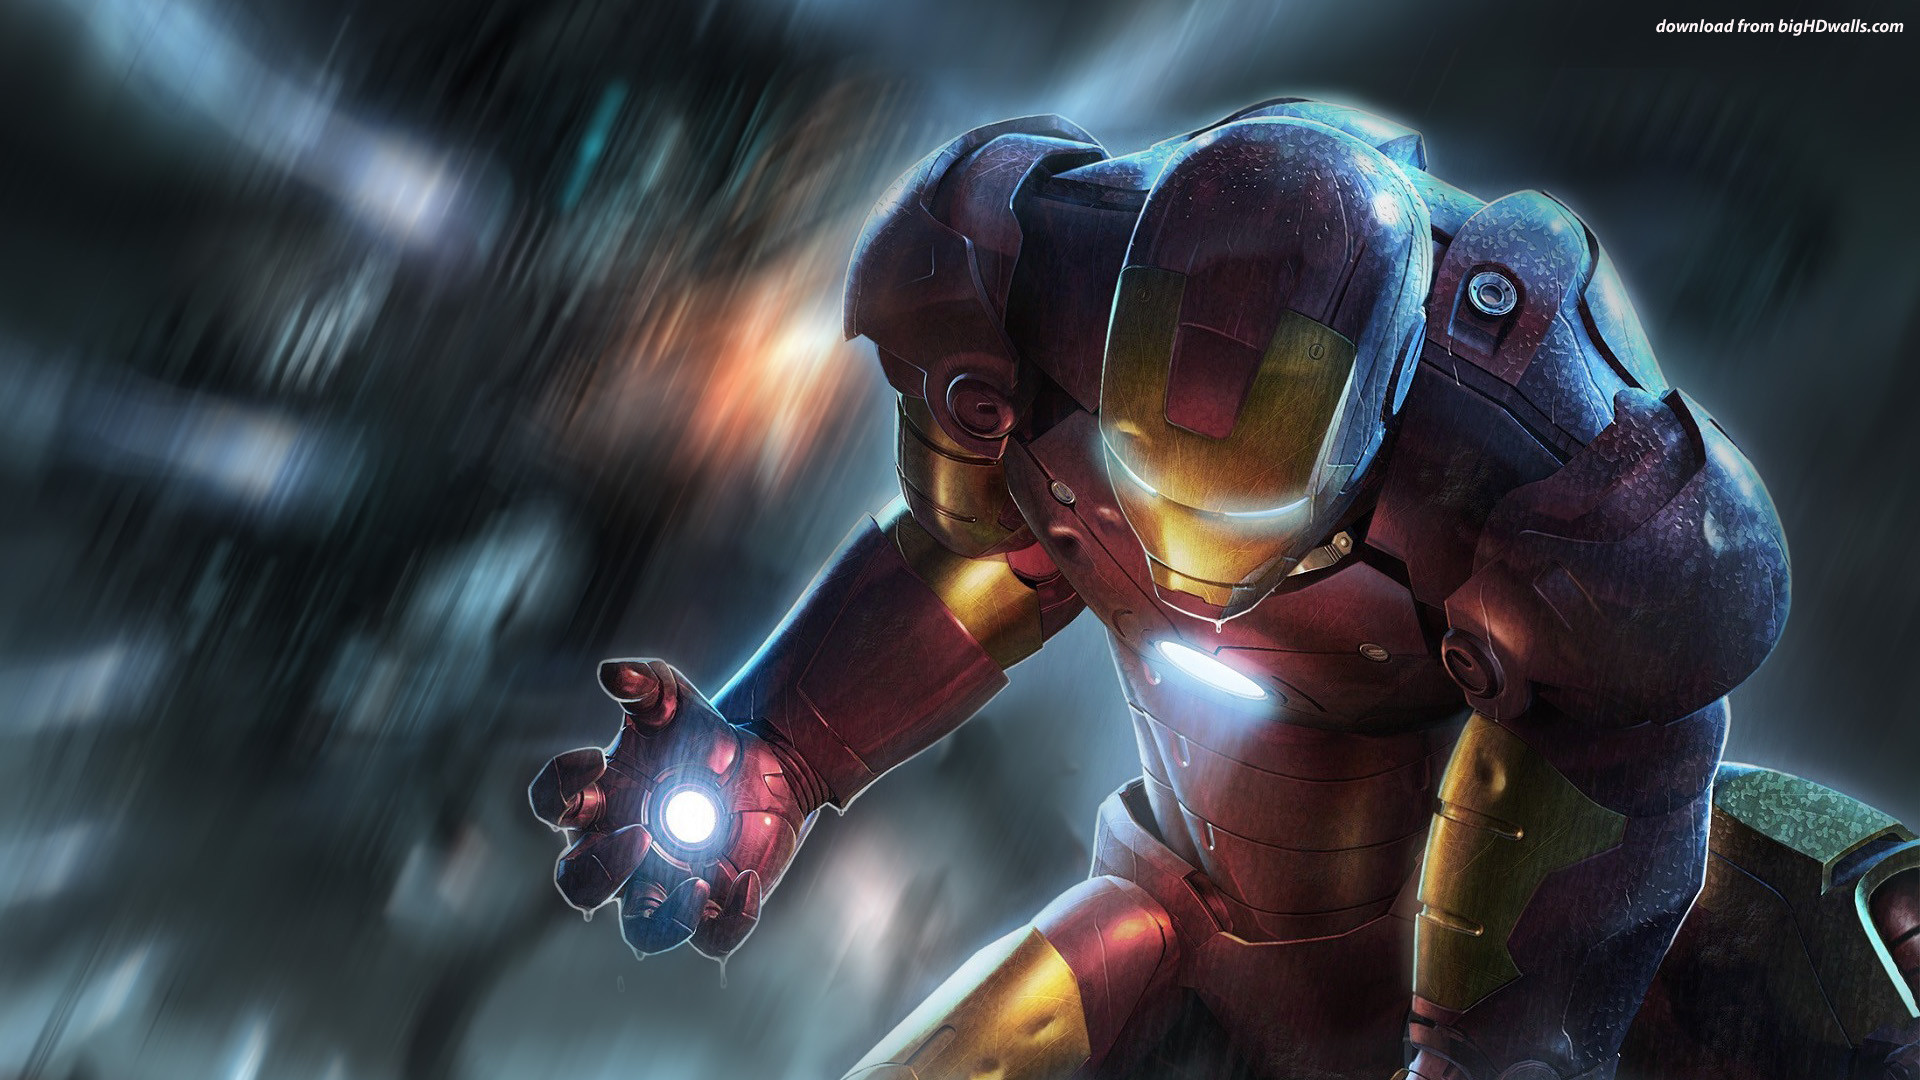 1920x1080 Free Download IRON MAN Full HD Wallpapers Wallpaper 600A 1067 Iron Man 3 44